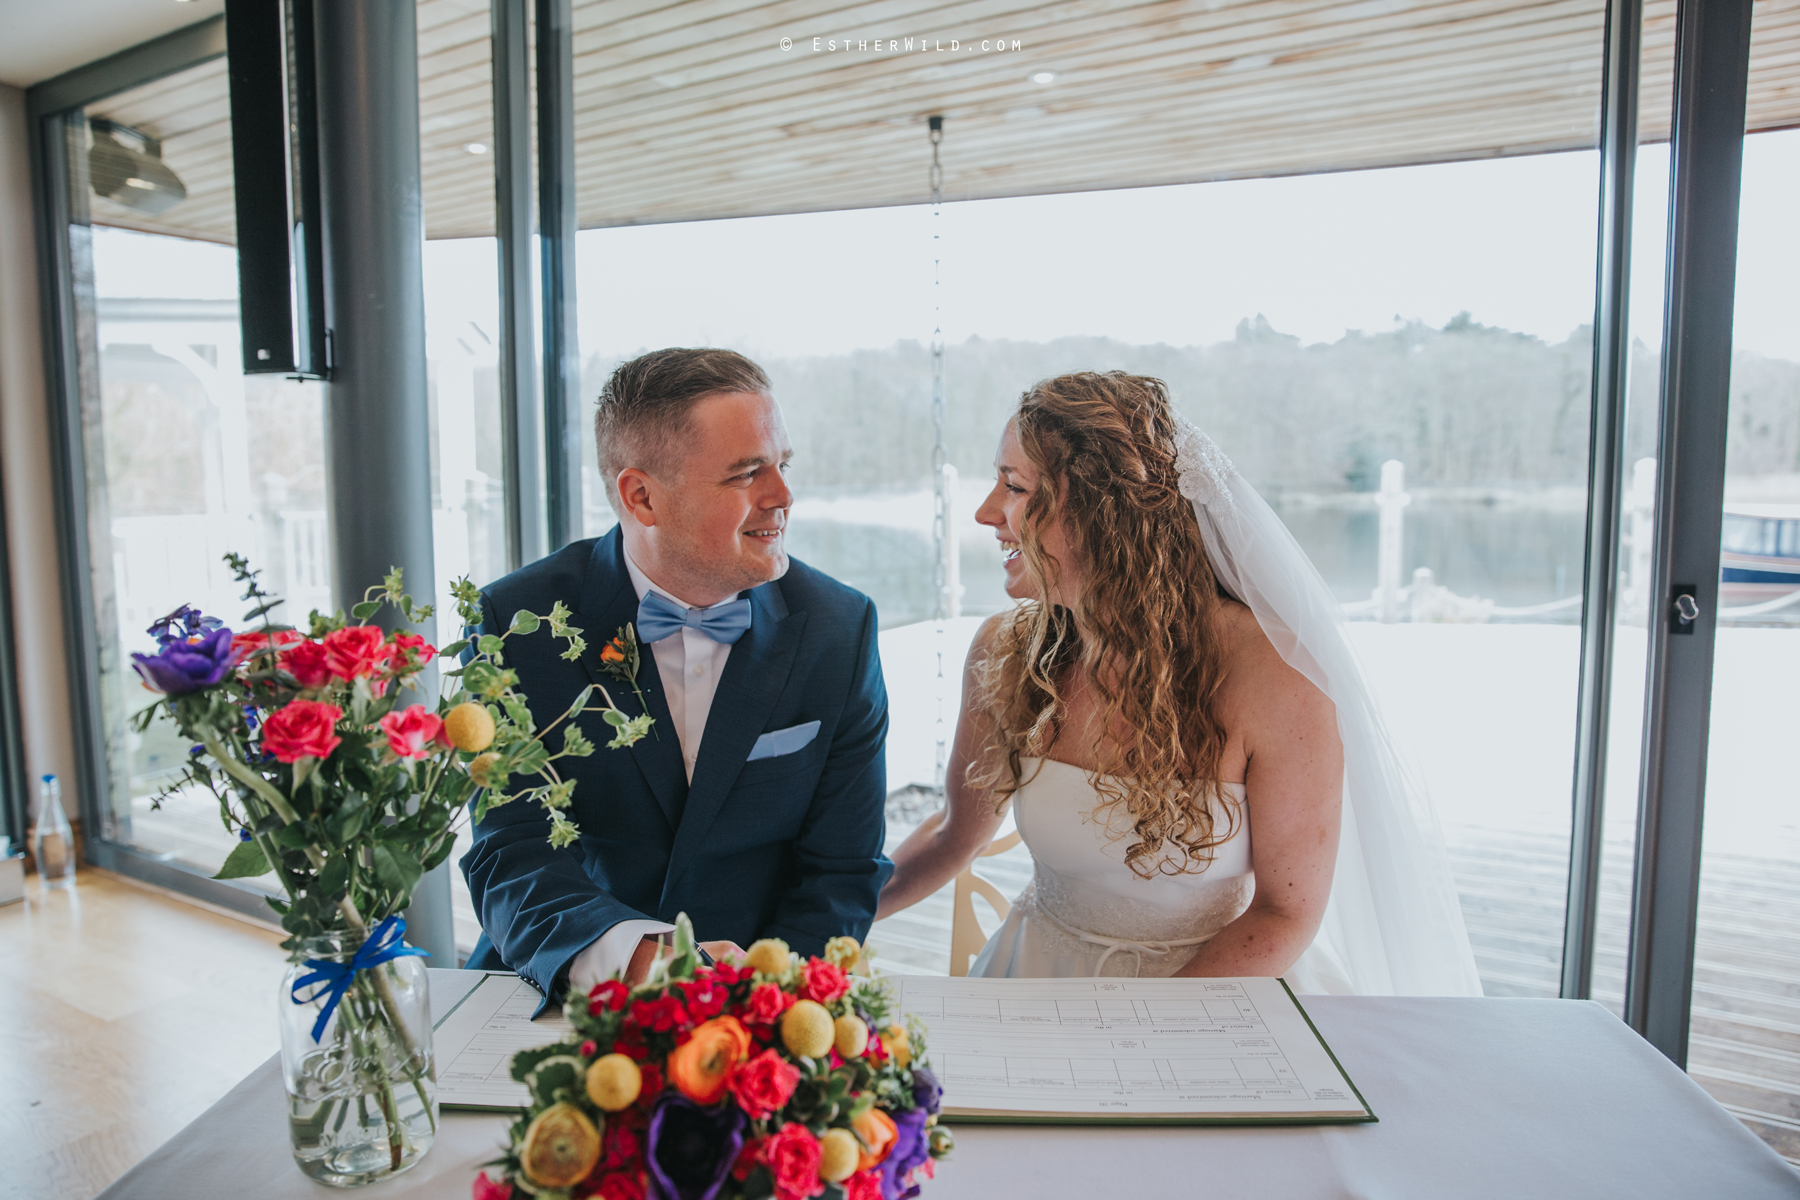 The_BoatHouse_Wedding_Venue_Ormesby_Norfolk_Broads_Boat_Wedding_Photography_Esther_Wild_Photographer_IMG_1230.jpg